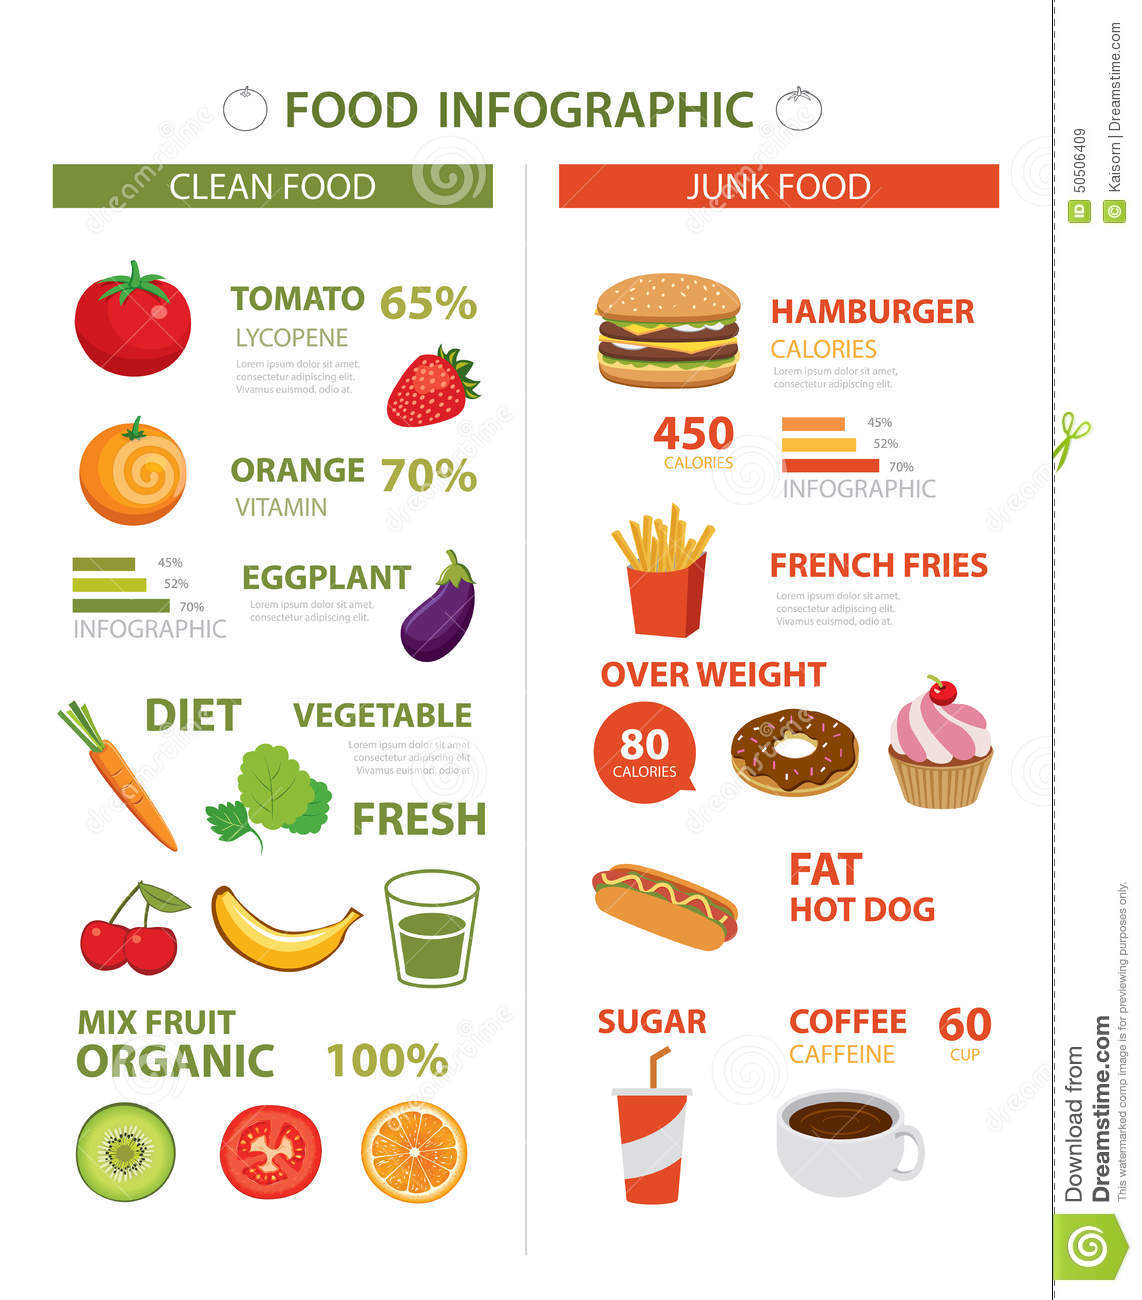 Calories Junk Food Vs Healthy Food